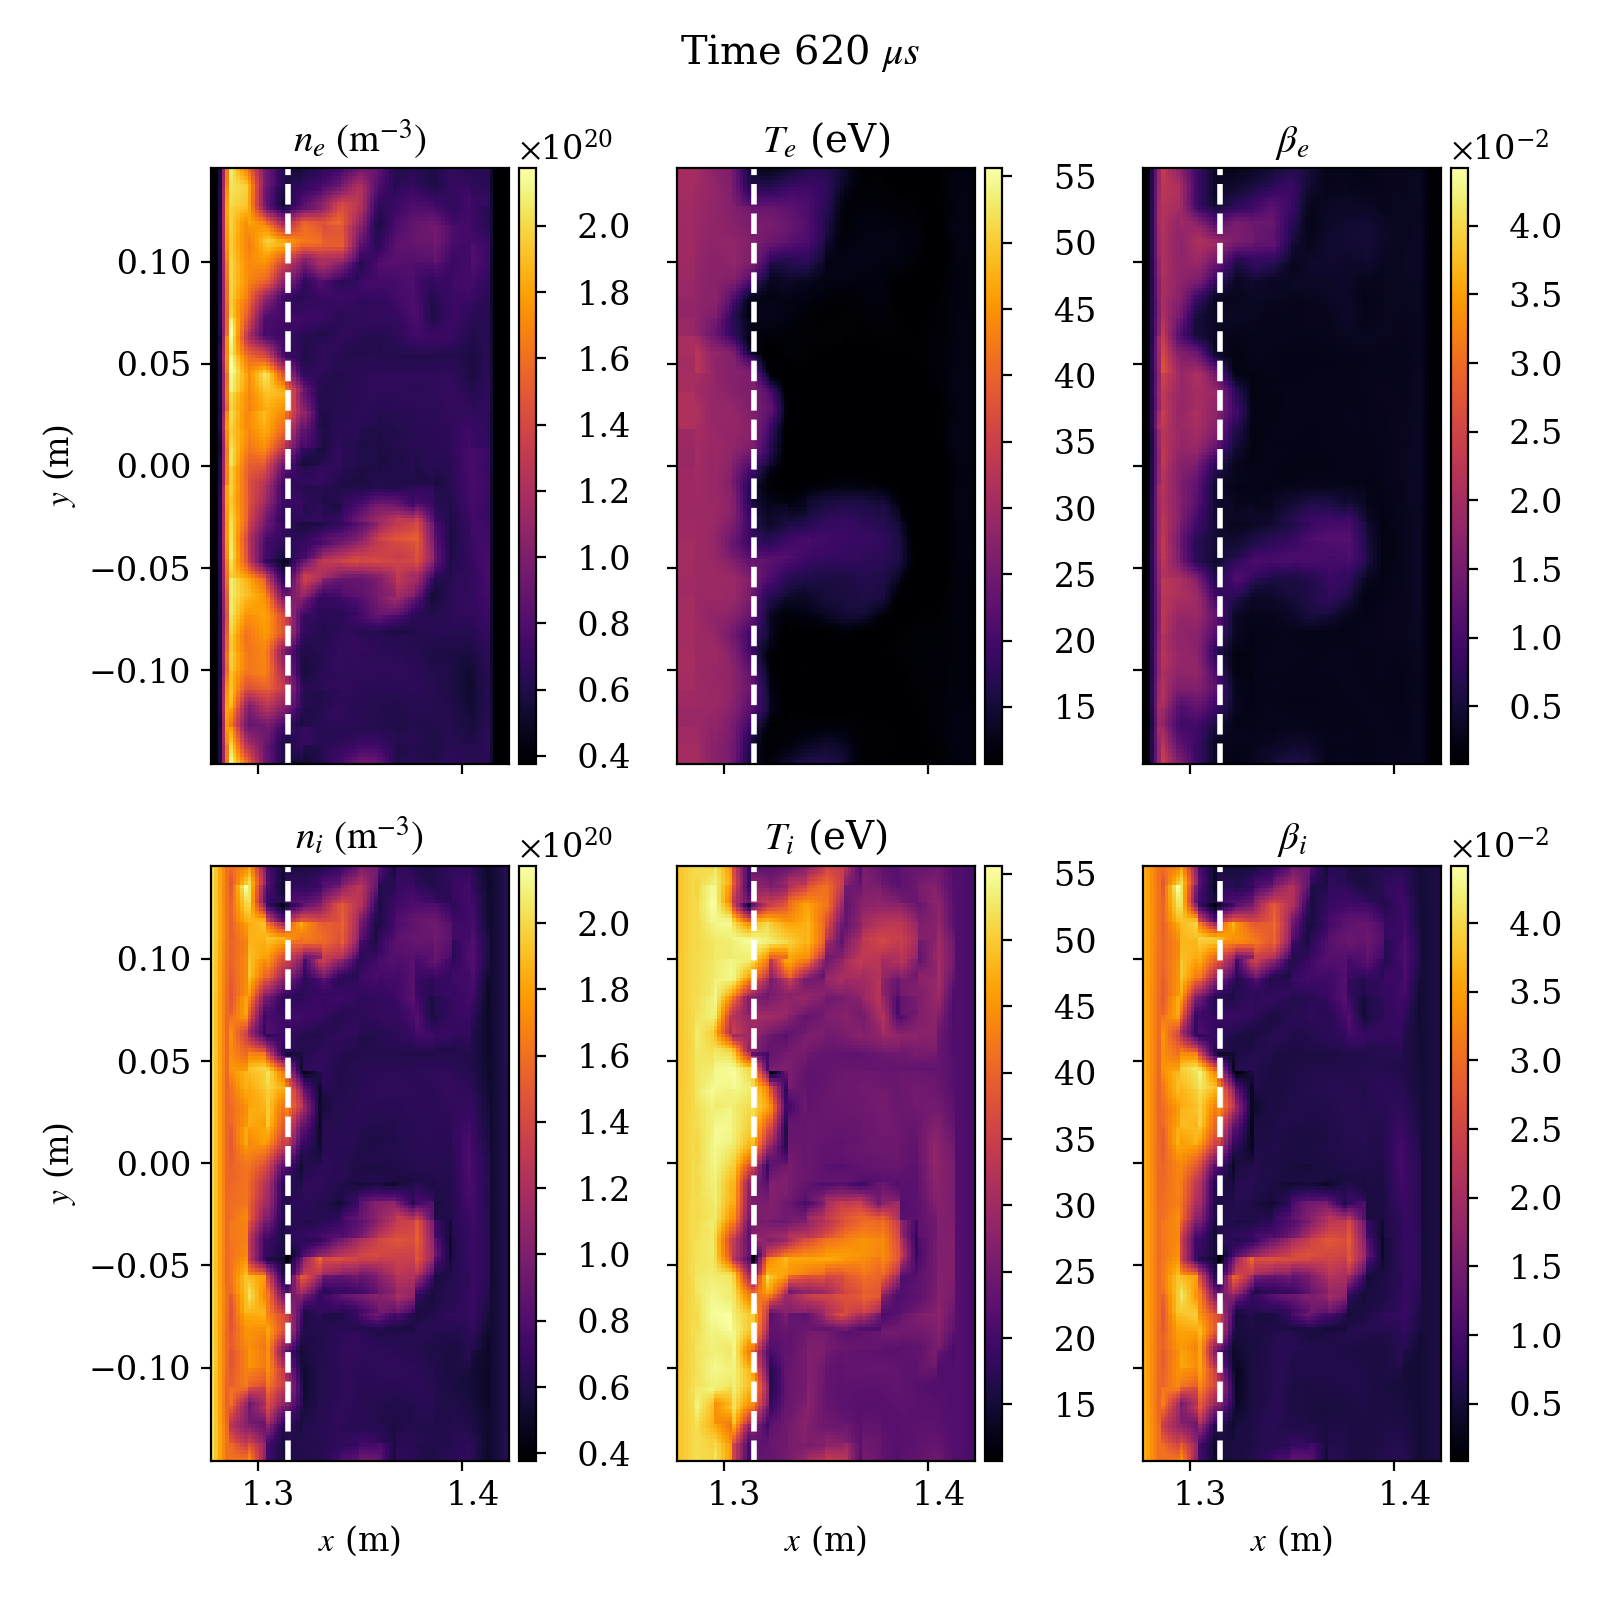 Full-$f$ electromagnetic simulation of a helical modelscrap-off-layer plasma. Shown are the density (left), temperature(middle) and plasma-$\beta$ (right) for electrons (top) and ions (bottom). The dashed line is where the source terms are applied. Intermittent blob-like structures are seen that are ejected from the source region and propagate outwards.